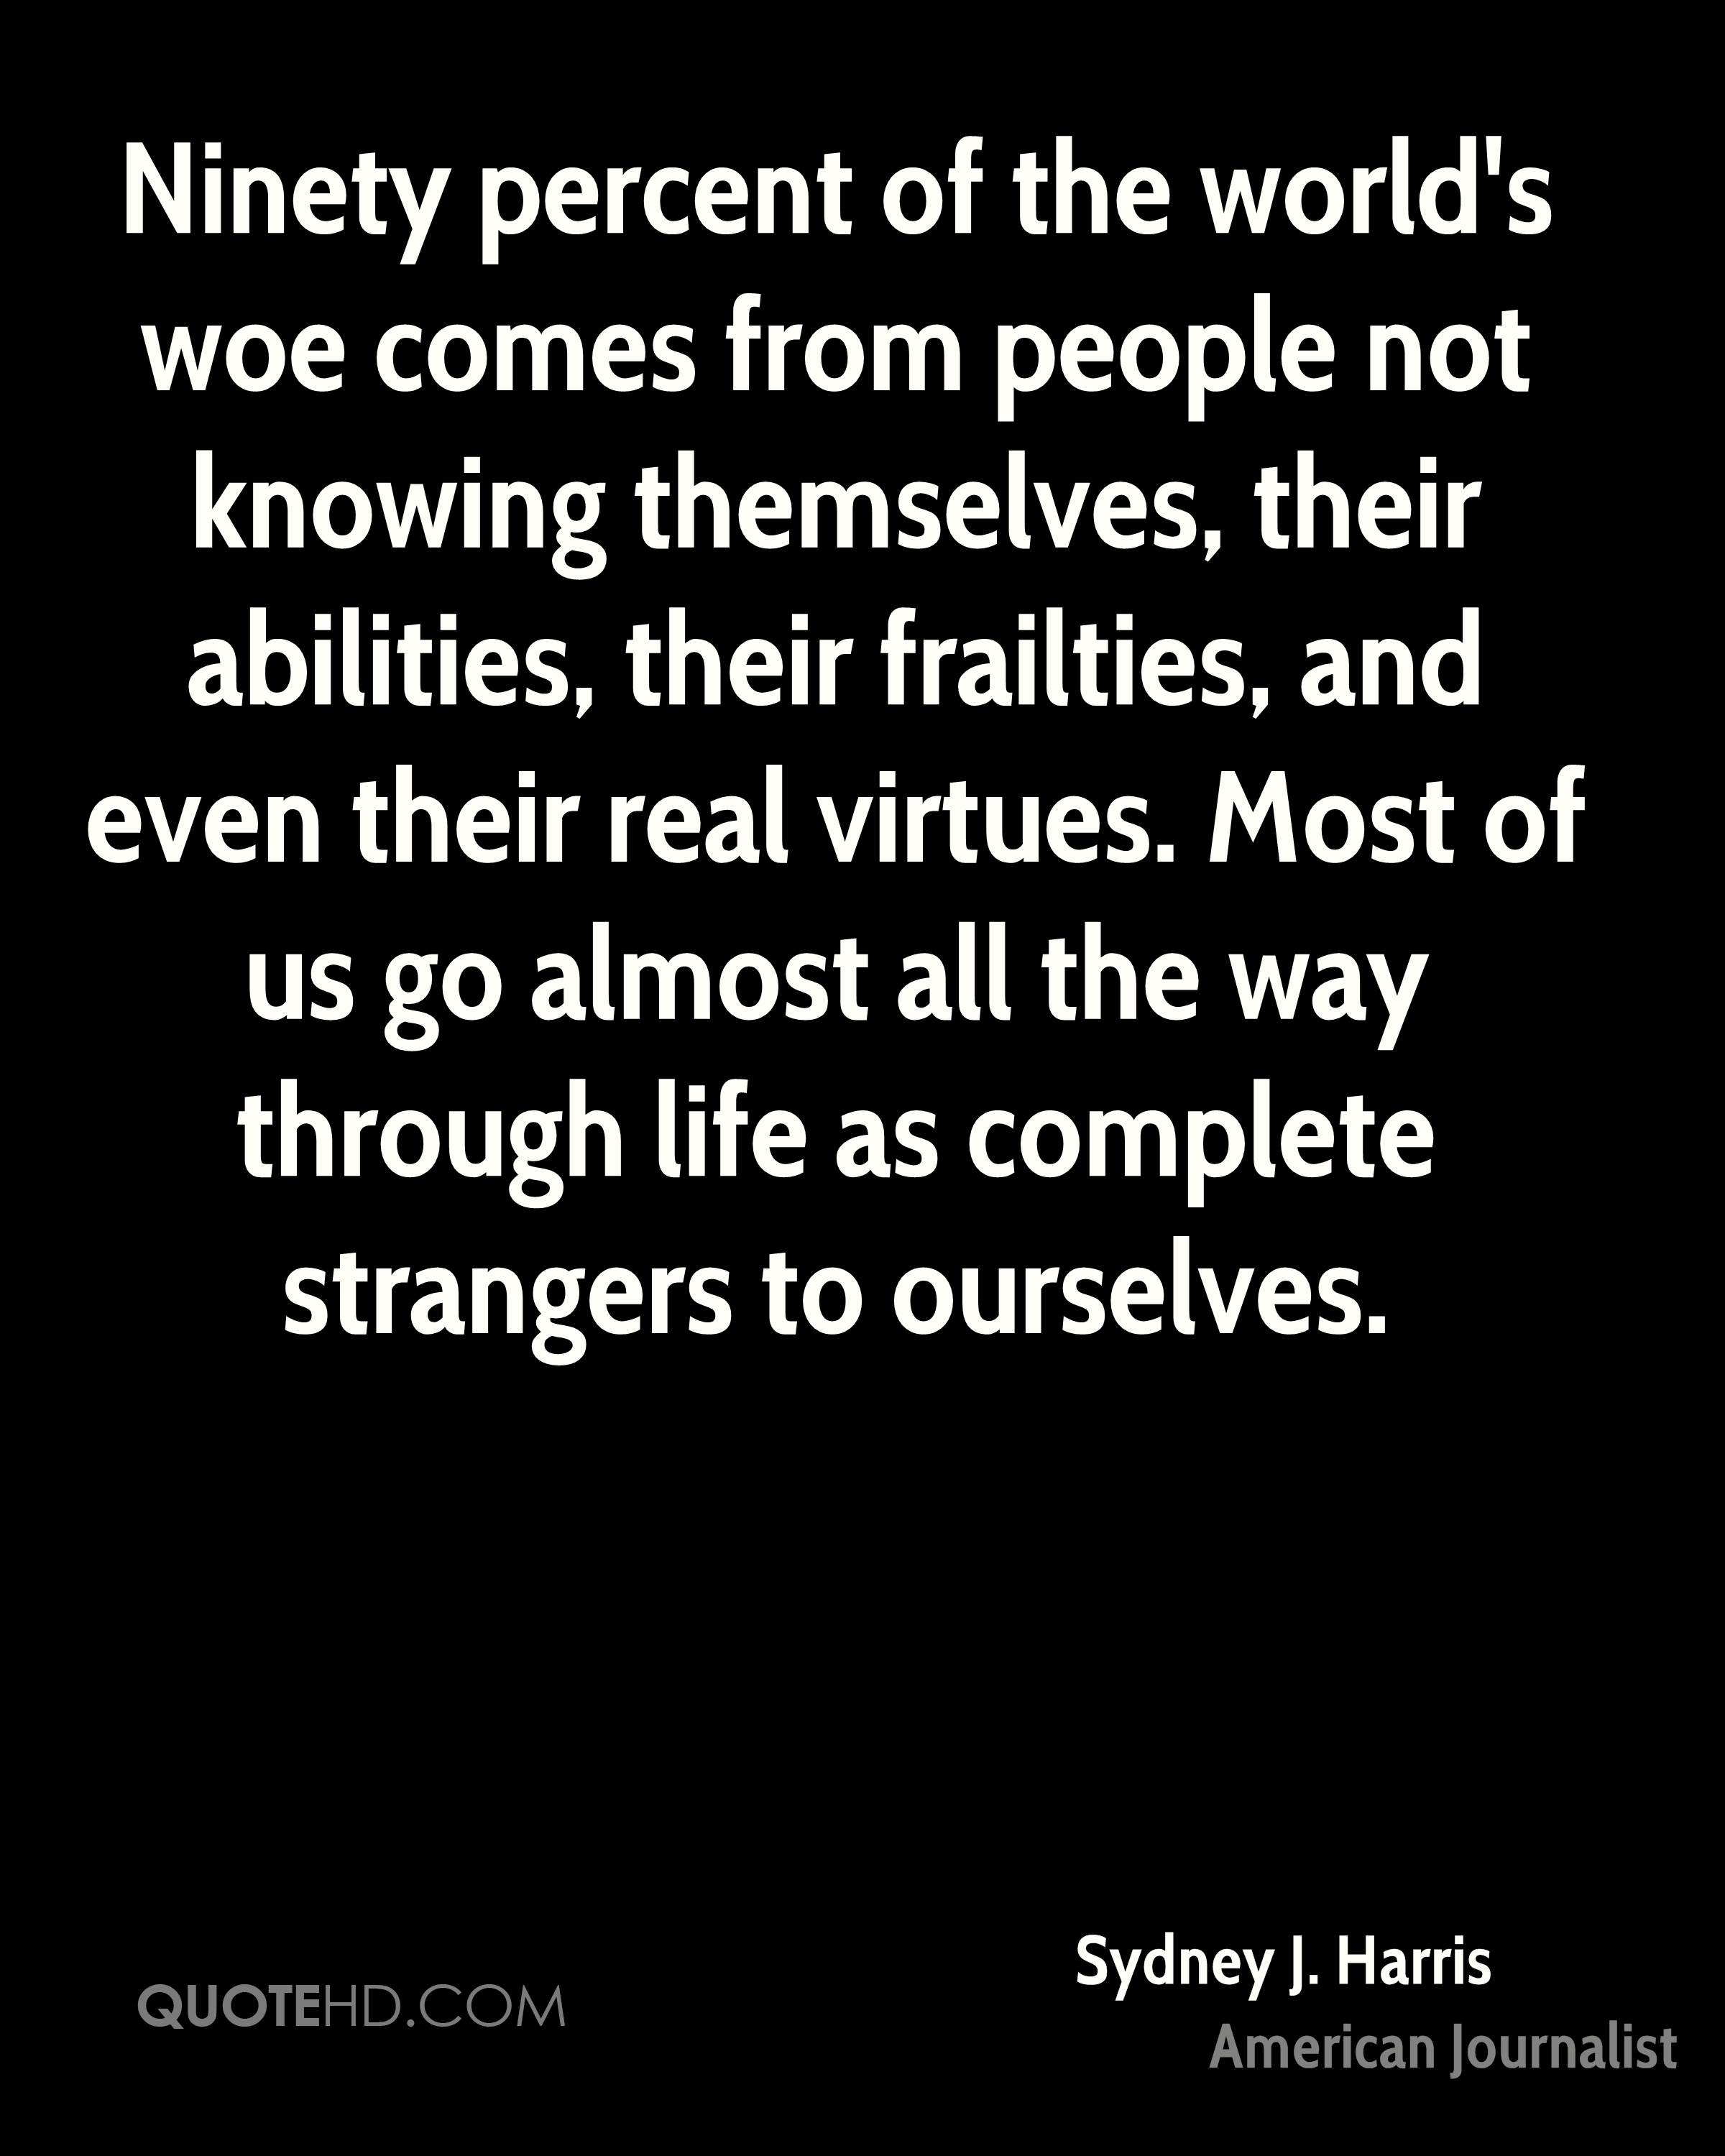 Ninety percent of the world's woe comes from people not knowing themselves, their abilities, their frailties, and even their real virtues. Most of us go almost all the way through life as complete strangers to ourselves.